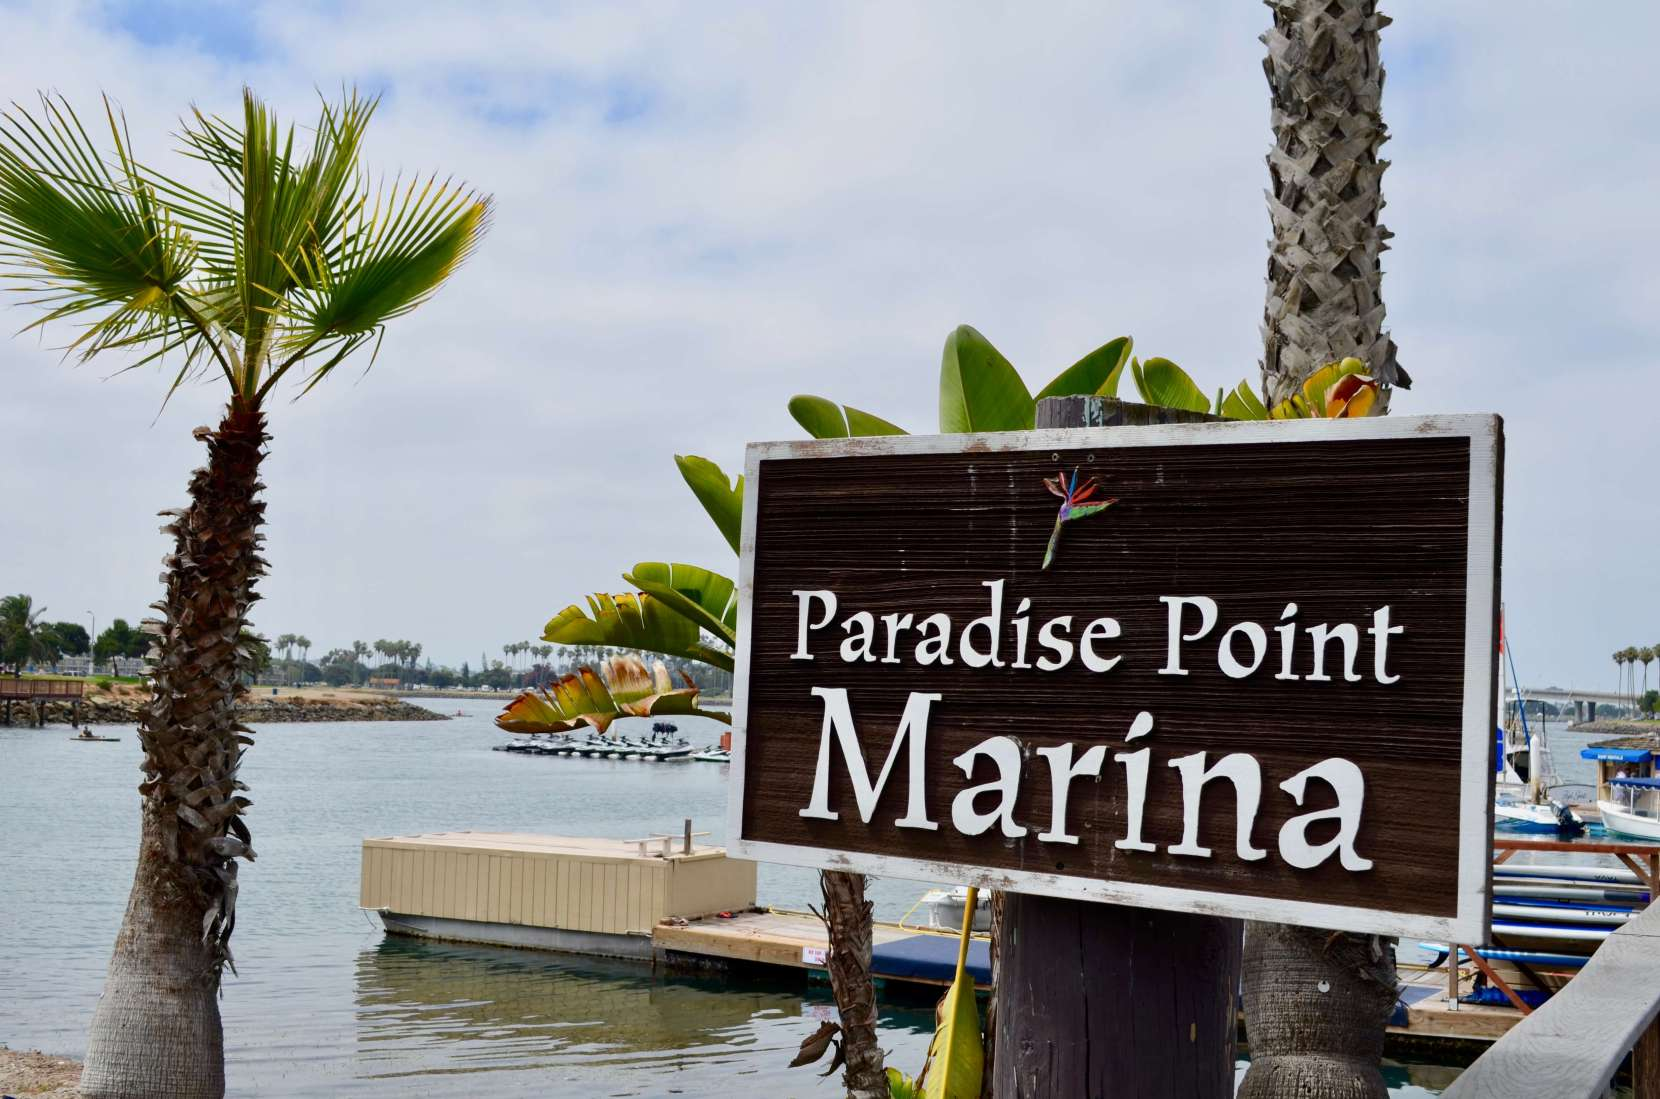 Paradise Point